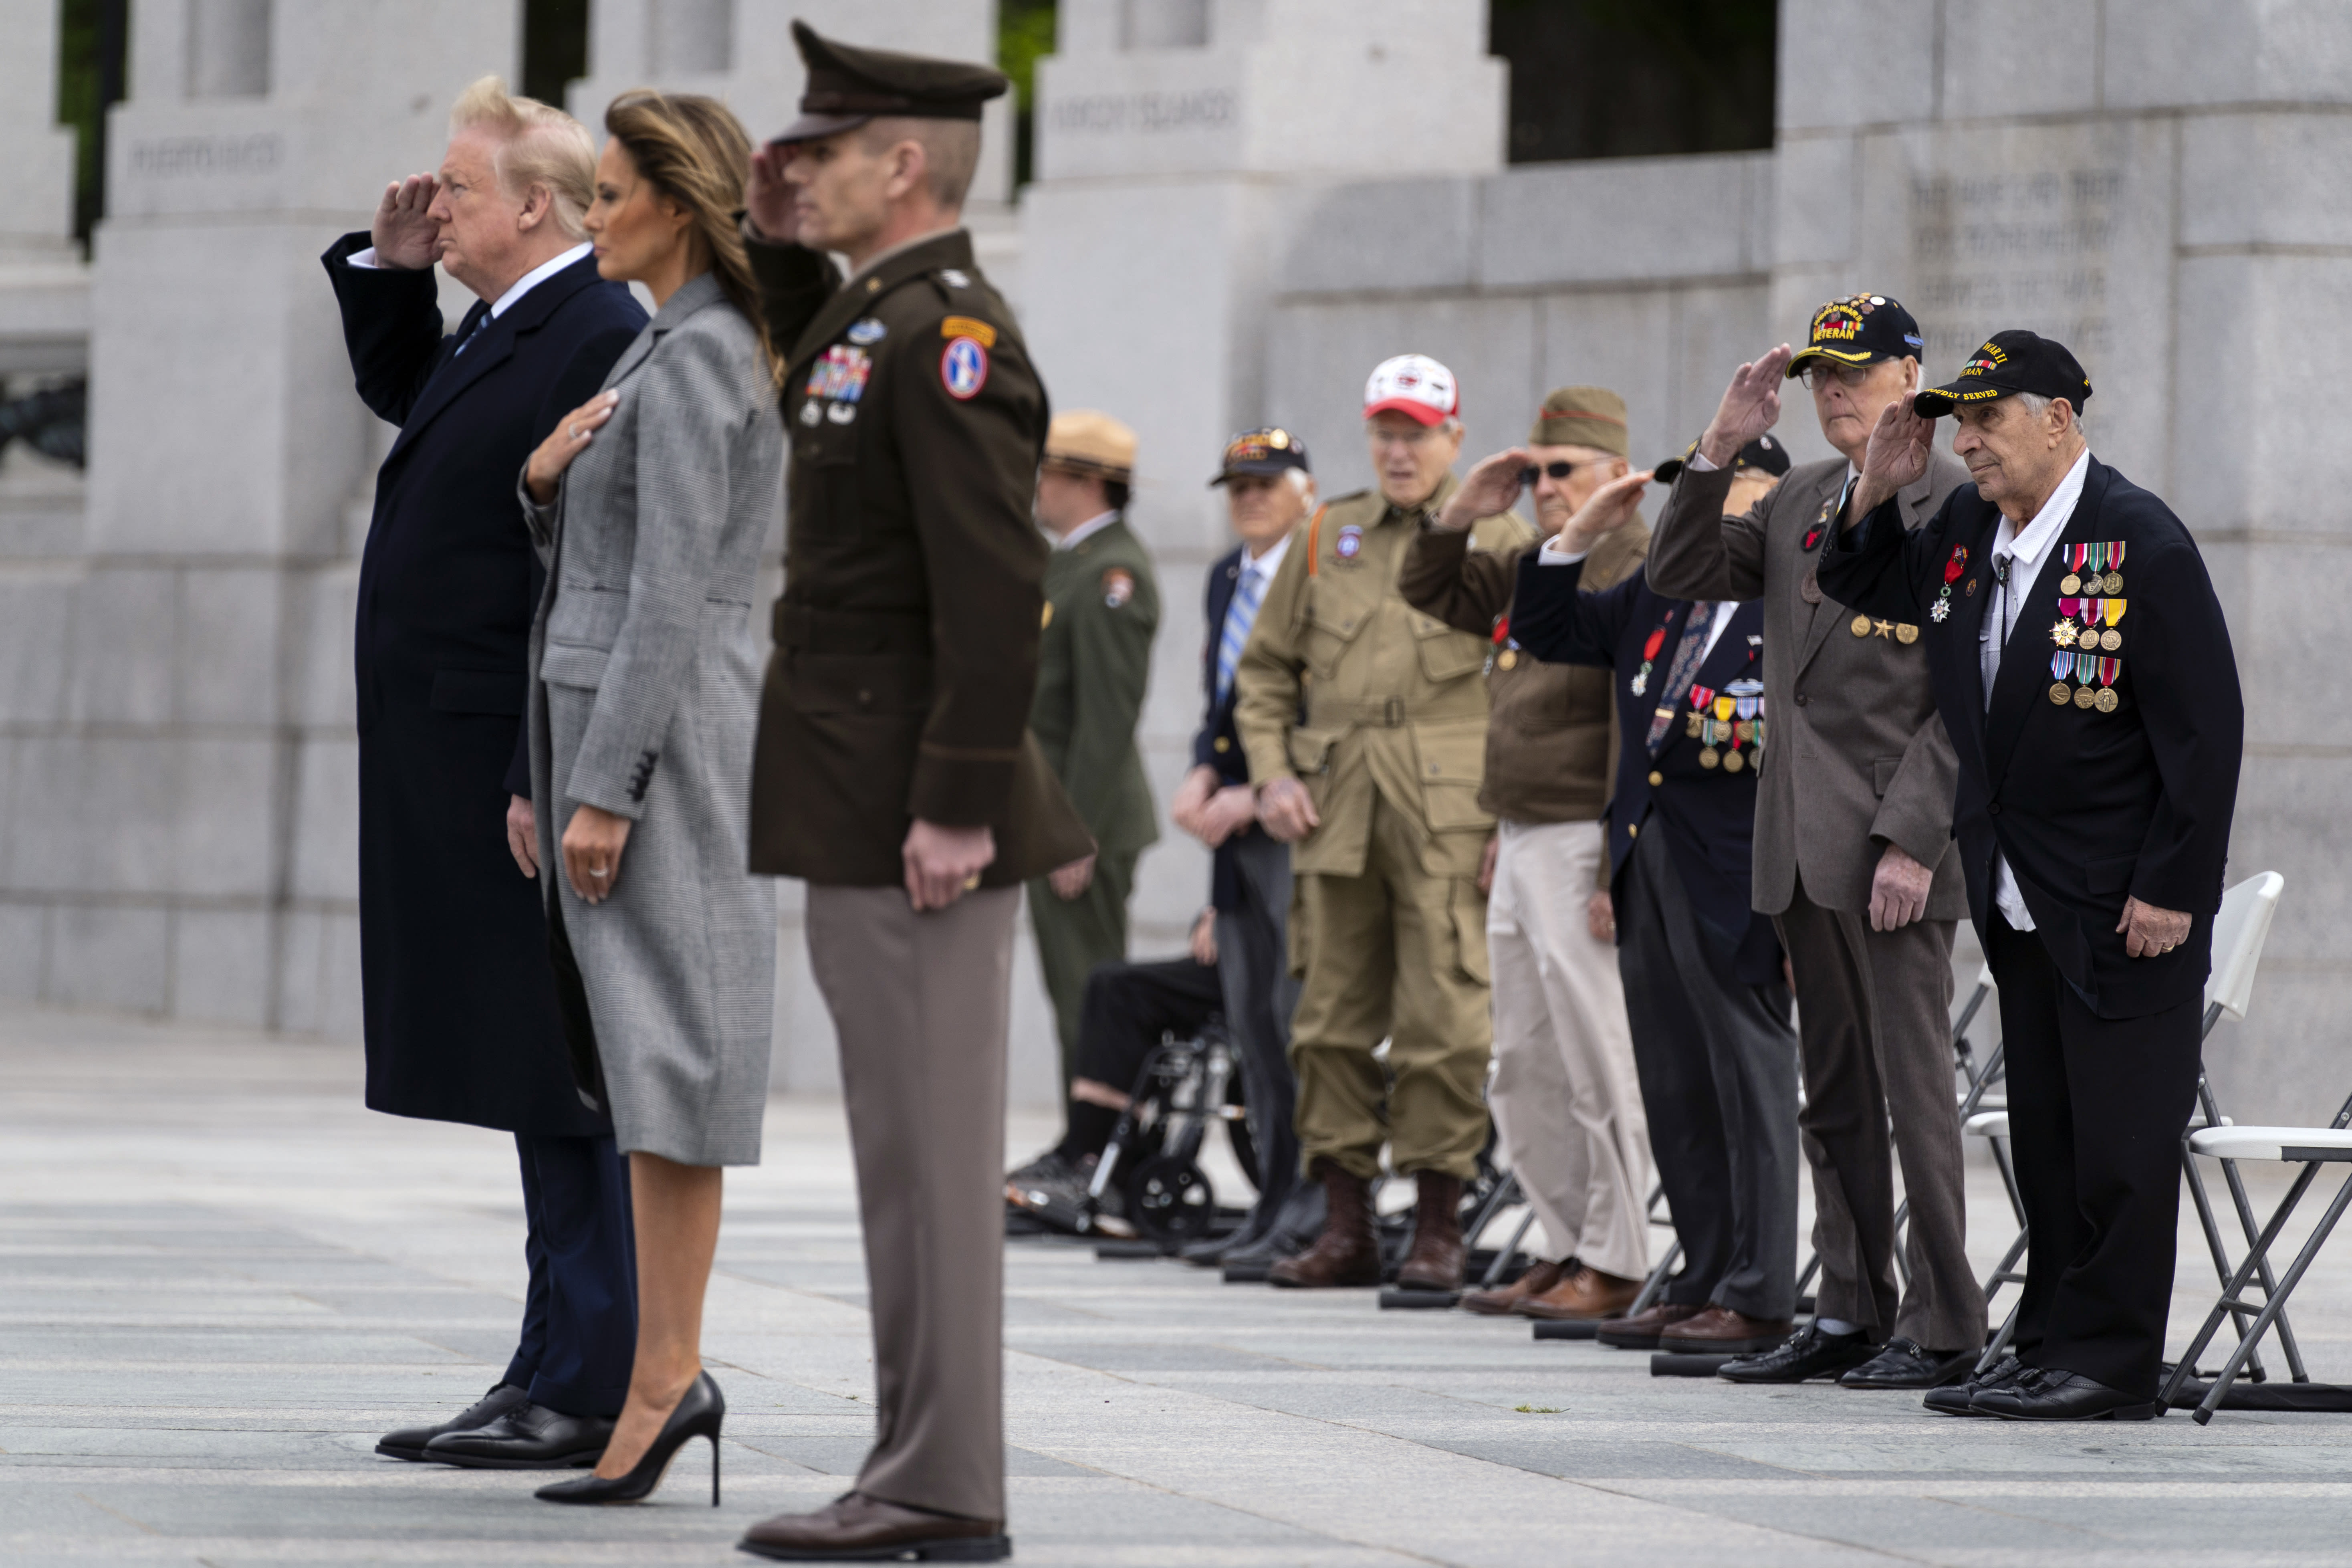 World War II veterans salute as Taps is played during a ceremony at the World War II Memorial to commemorate the 75th anniversary of Victory in Europe Day with President Donald Trump and first lady Melania Trump, Friday, May 8, 2020, in Washington. (AP Photo/Evan Vucci)